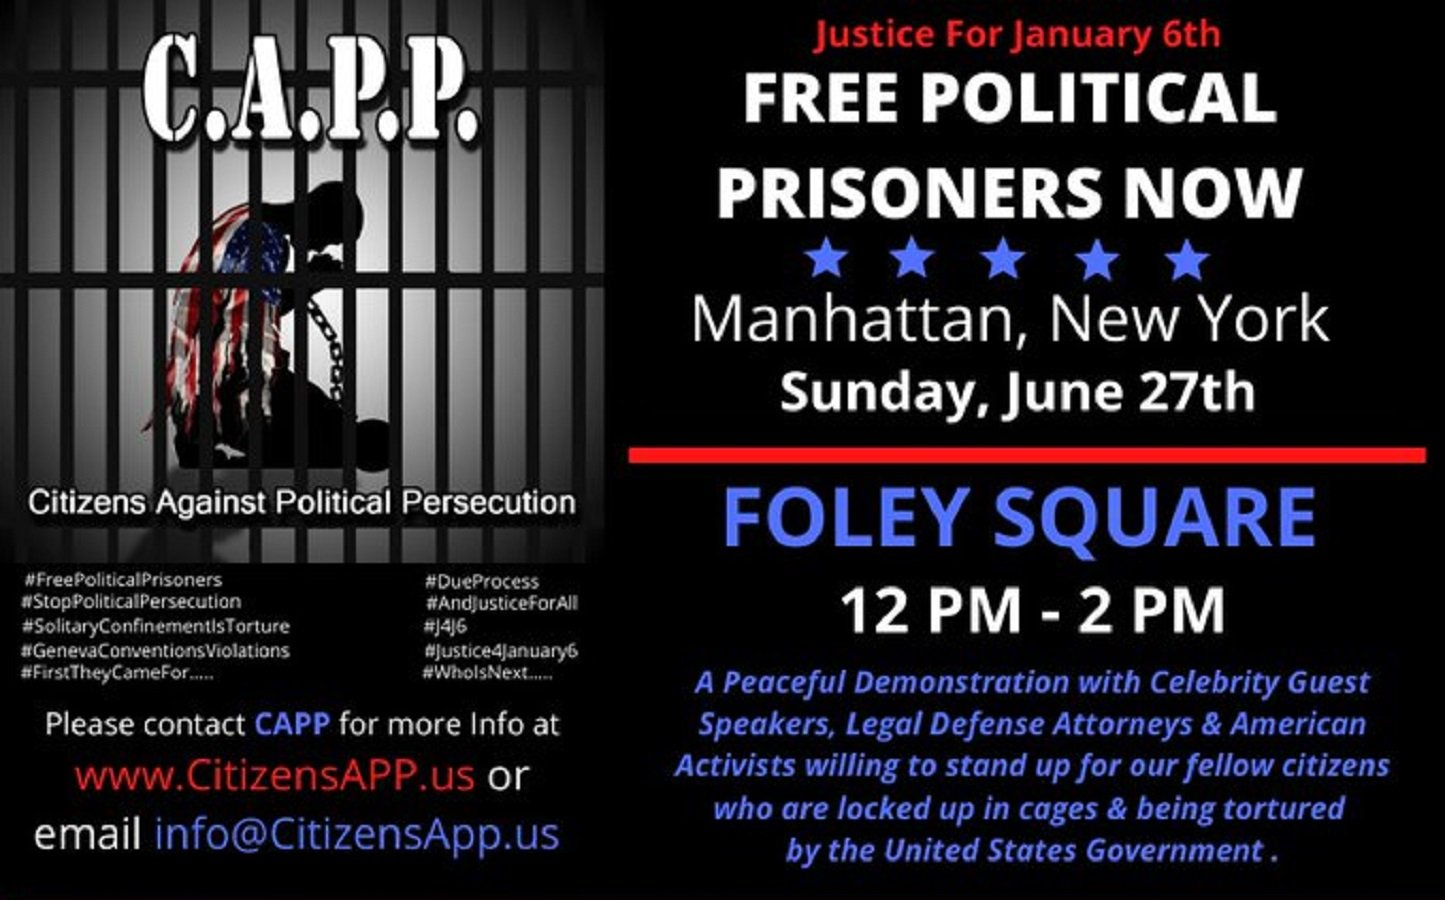 Citizens Against Political Persecution to Hold Protest for January 6 Prisoners in New York